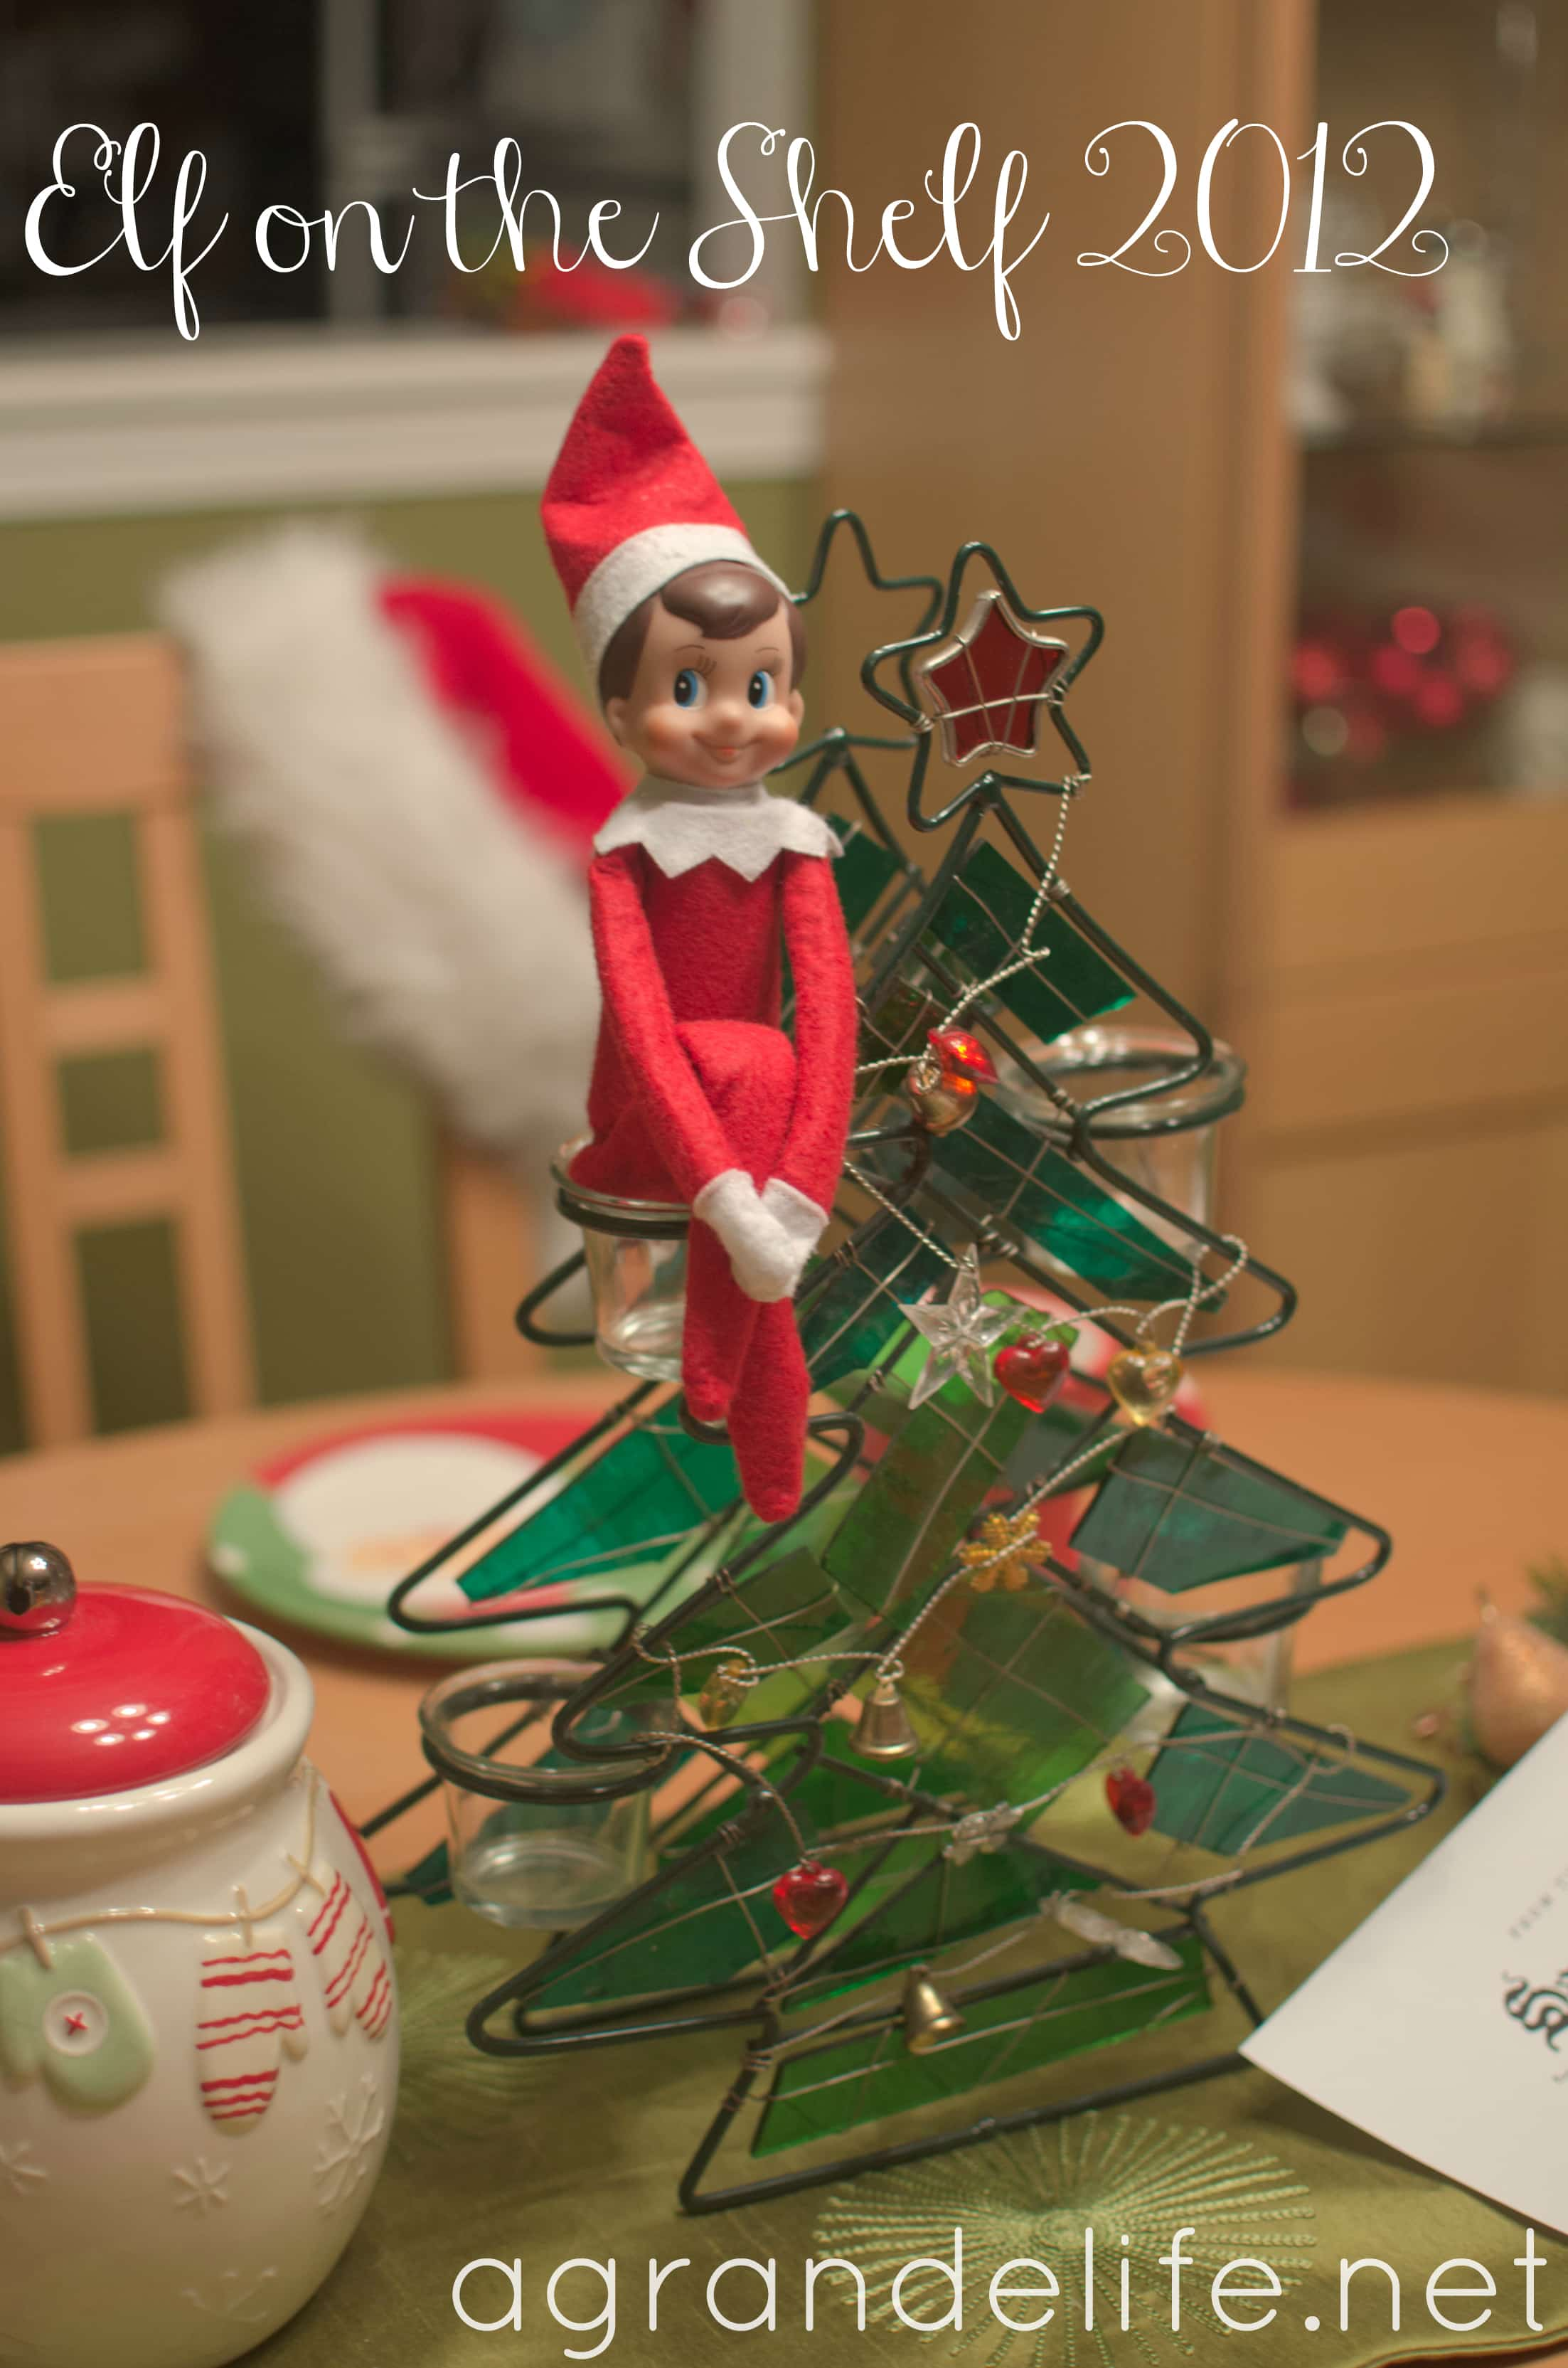 he comes back sometime around thanksgiving as it says in the elf on the shelf book. But he could come anytime. BE GOOD! No my elf last year came back around the beginning of November. he comes back sometime around thanksgiving as it says in the elf on the shelf book.